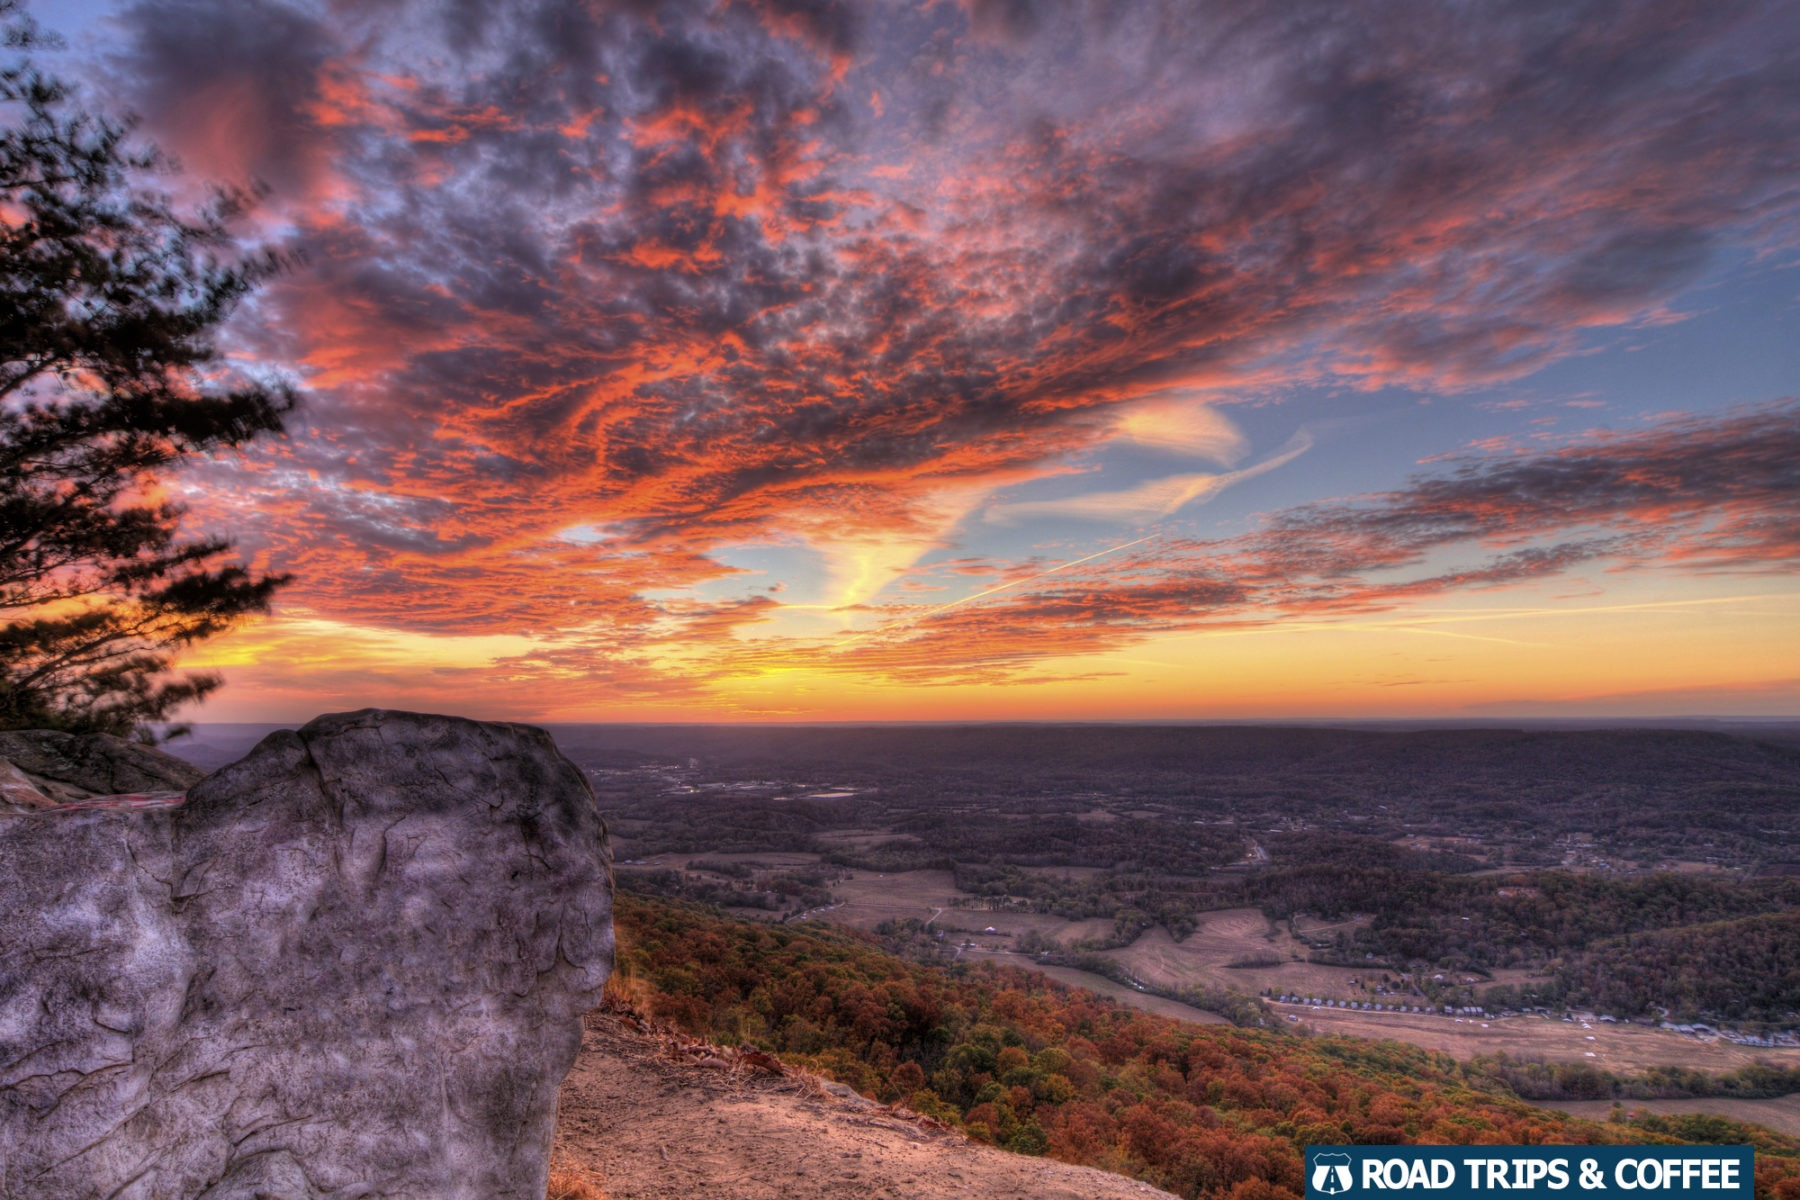 Warm oranges and pinks spread across the clouds during sunset in Lookout Mountain, Georgia